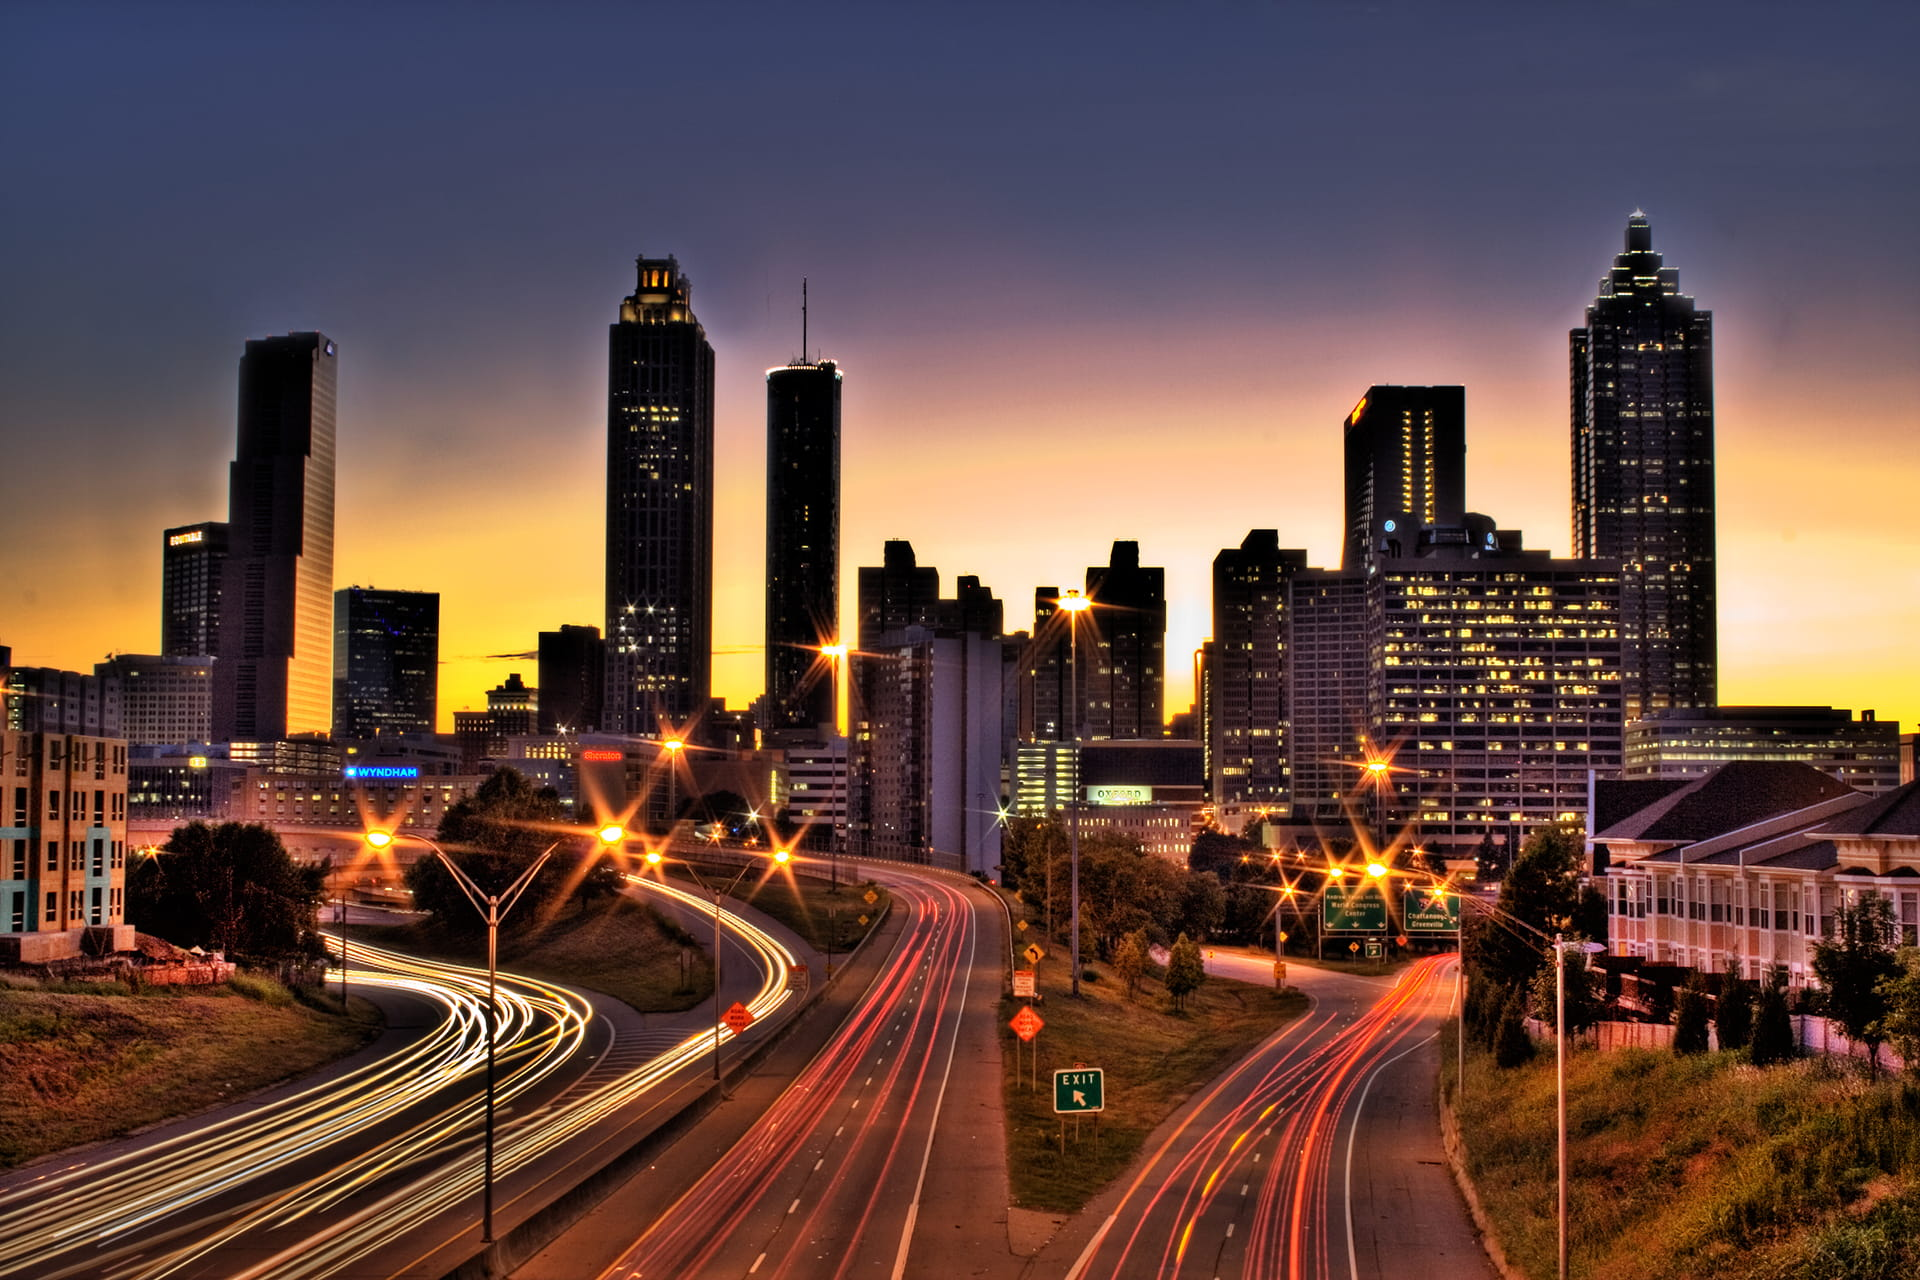 Atlanta Fast Traffic Skyline at Sunset